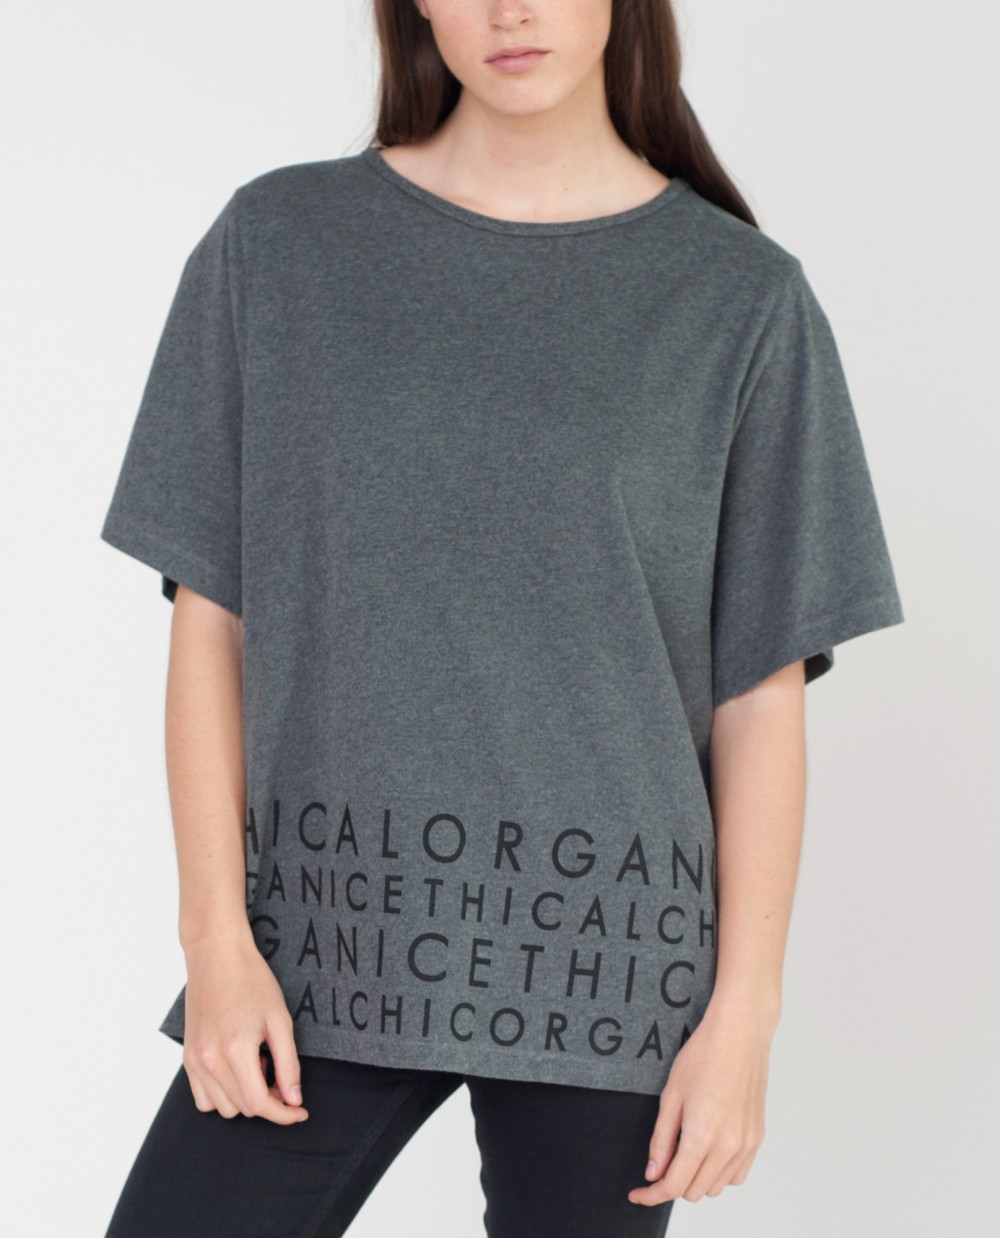 Una-Beaumont-Organic-Organic-Cotton-Print-Tshirt-Dark-Grey-1